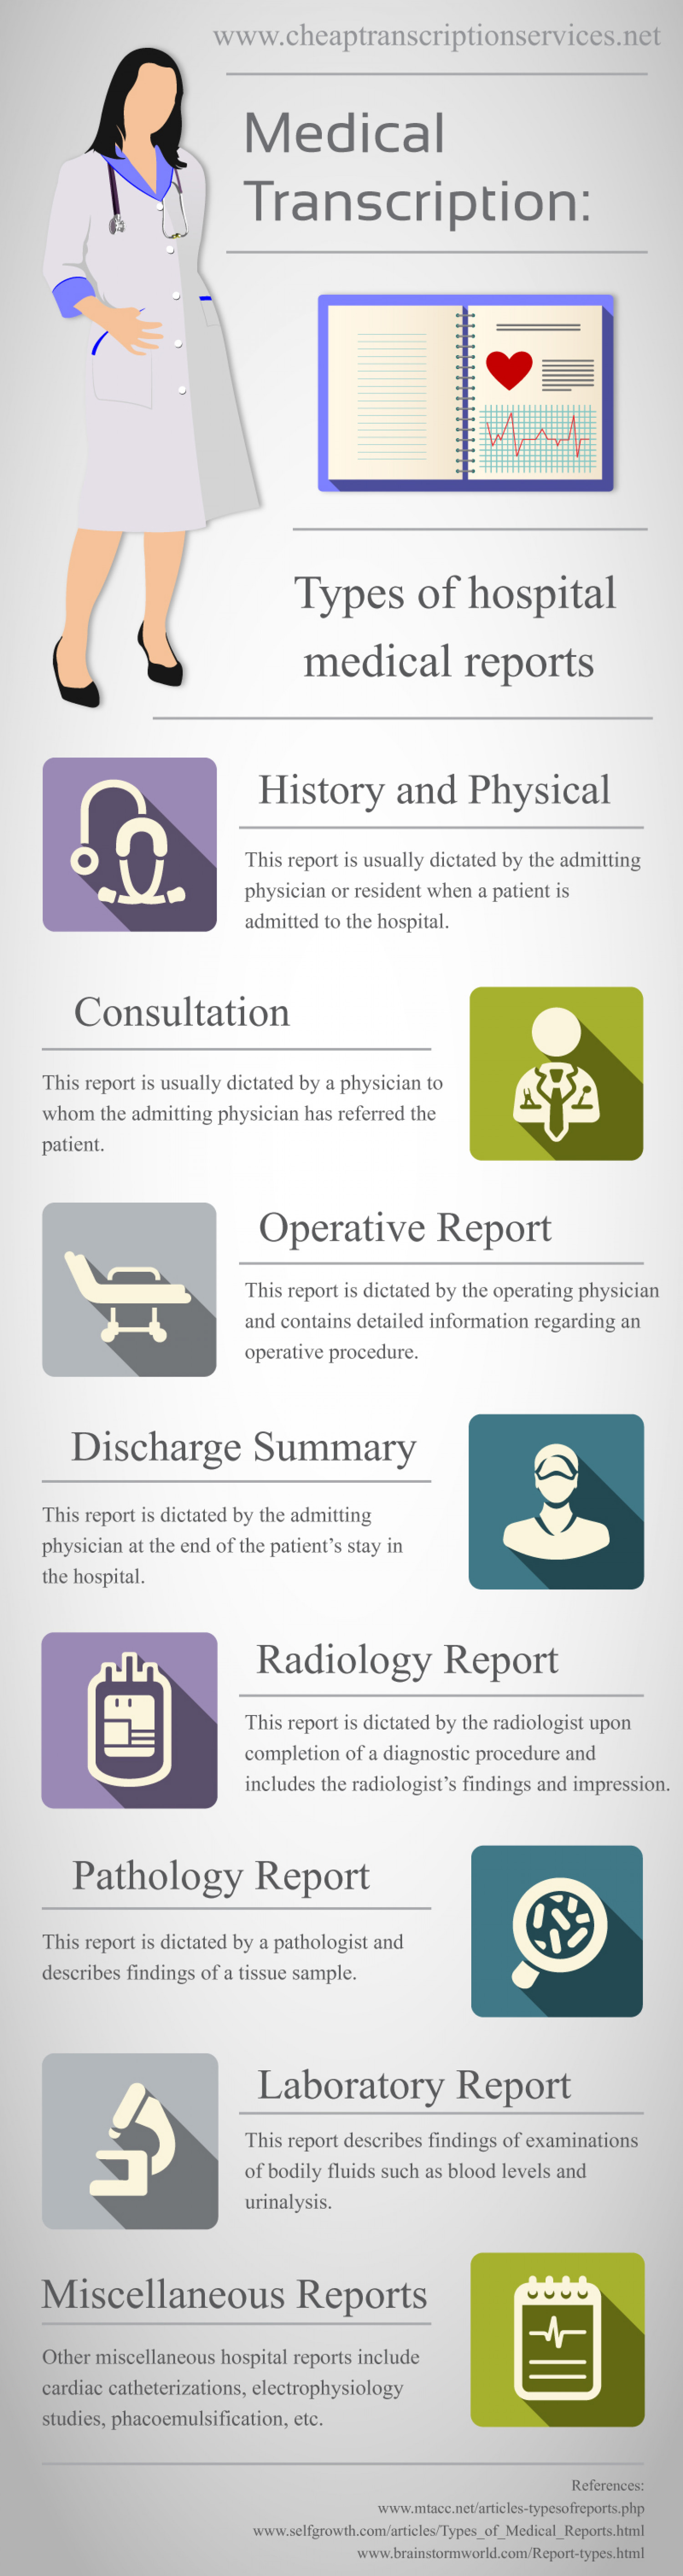 medical transcription  types of hospital medical reports